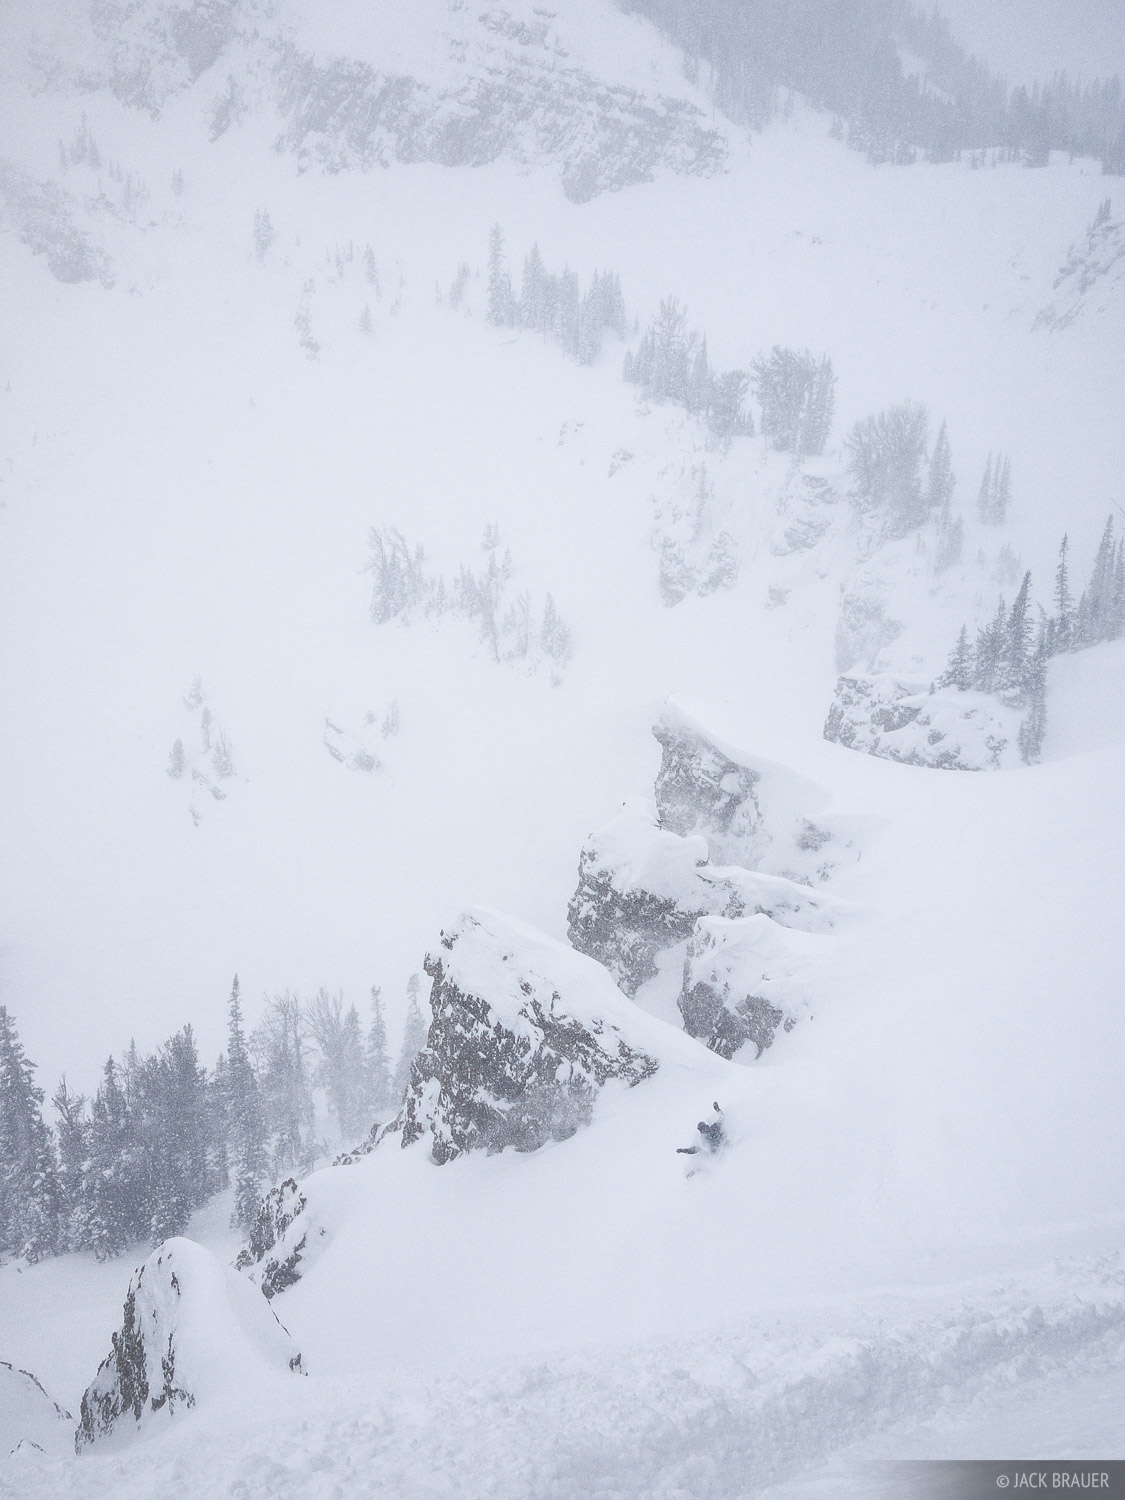 Jason King slashes down a chute through a rocky cliffband in the Jackson Hole slackcountry - February.